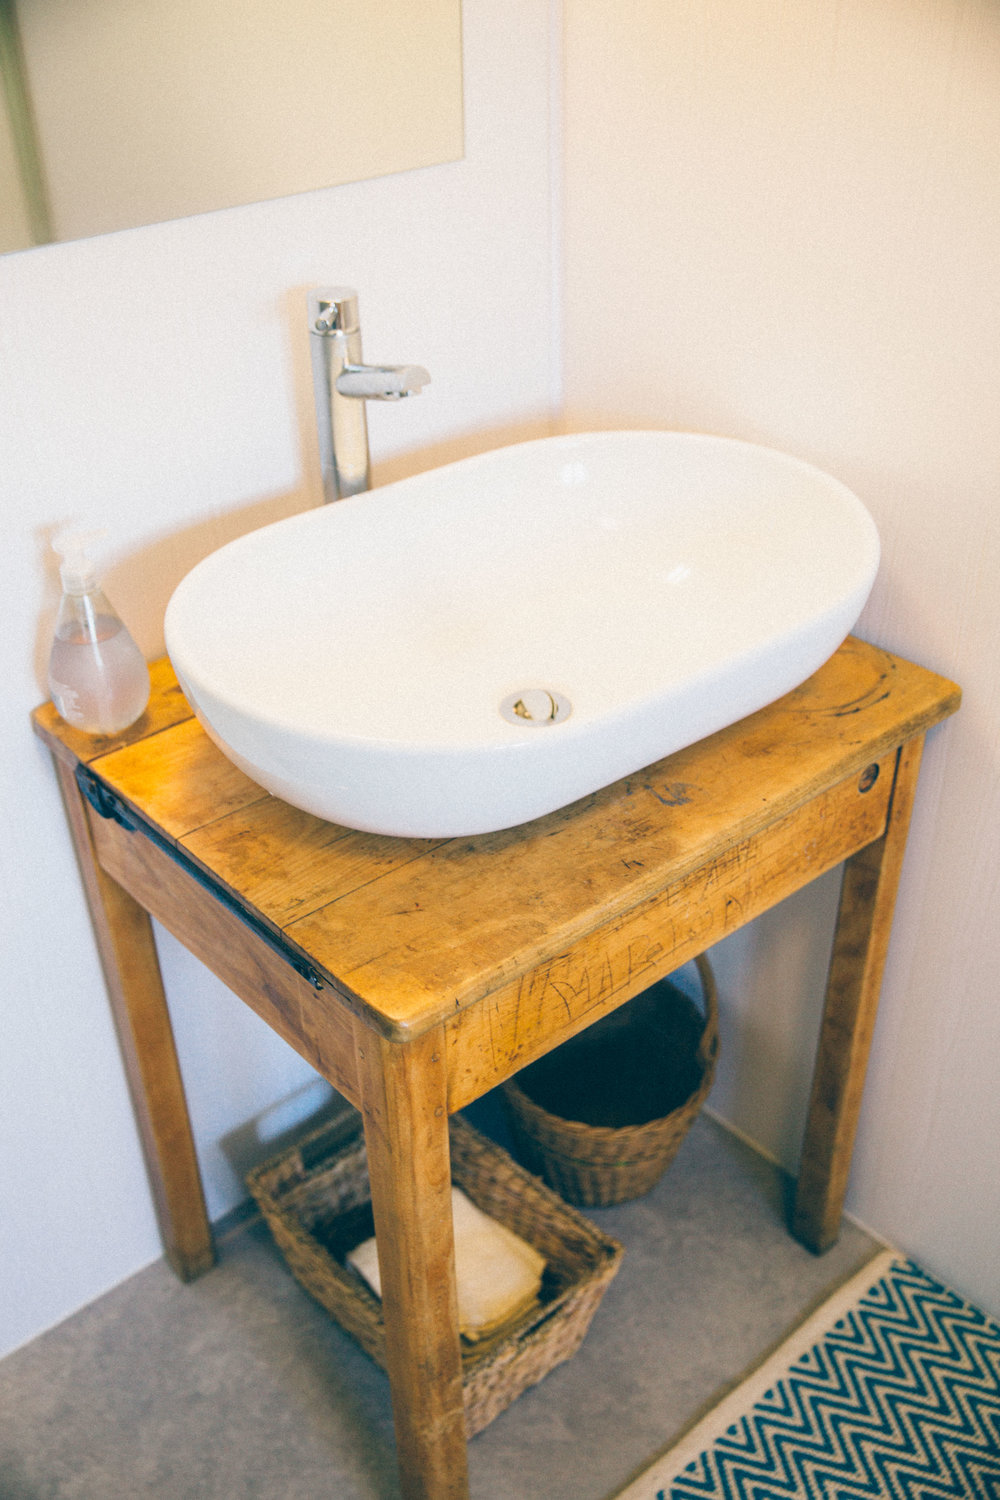 Wash bowl sink on an old school desk with baskets for flannels underneath